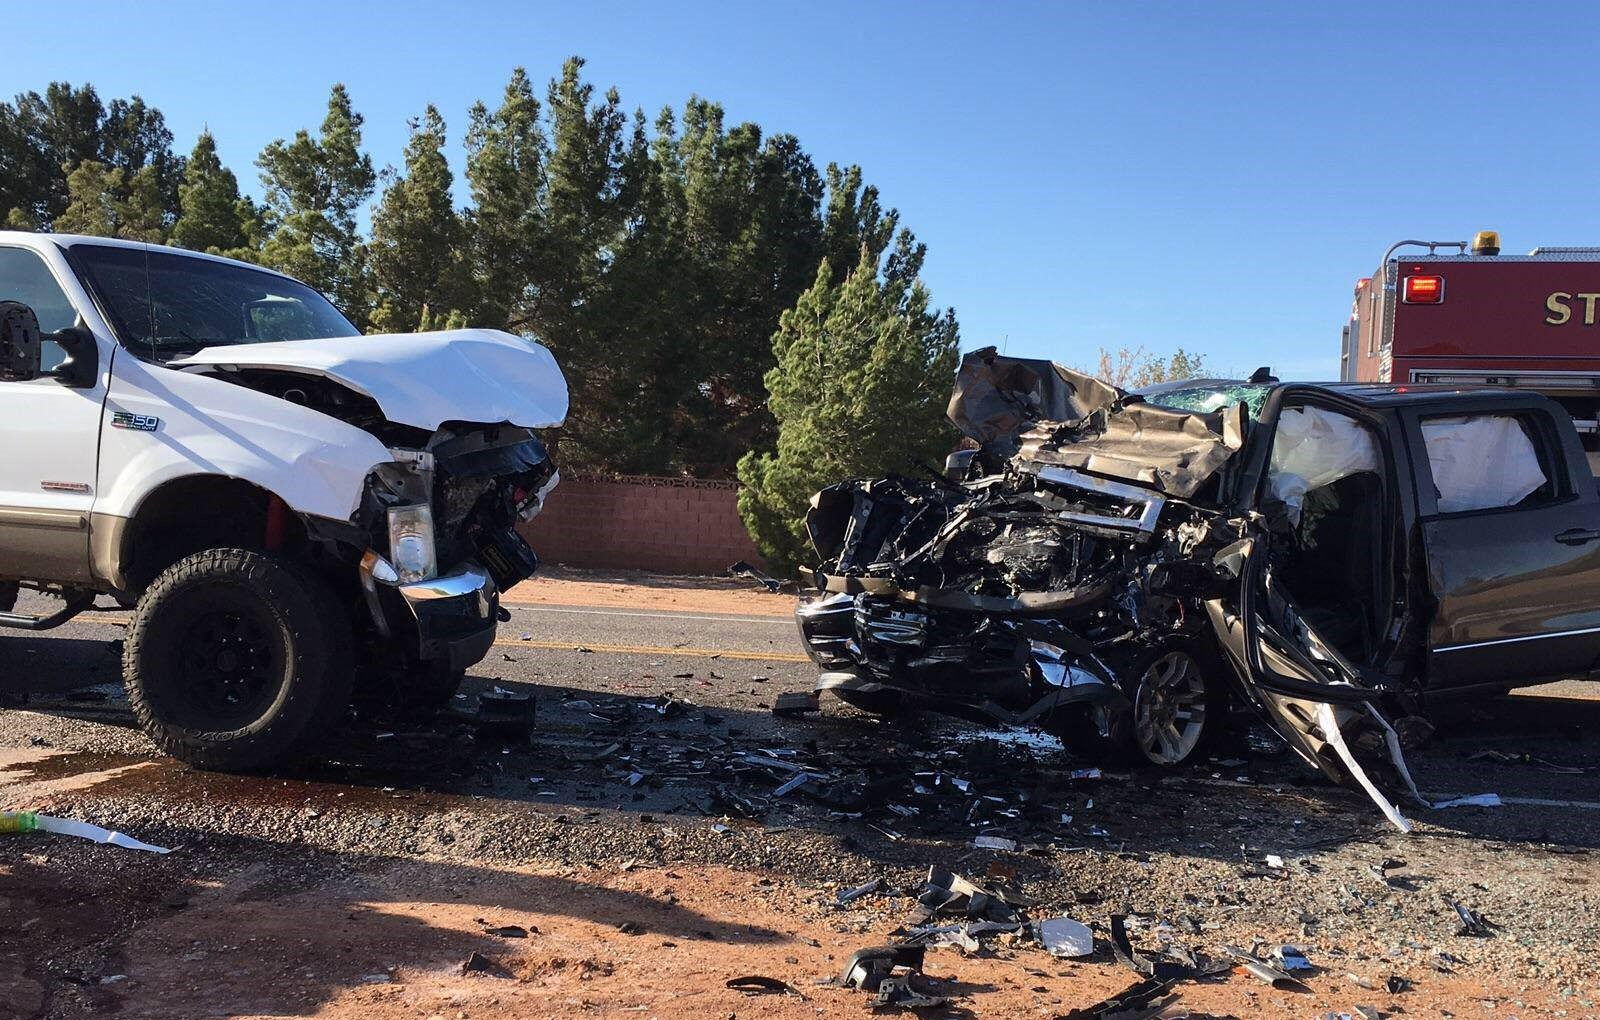 White Ford F-350 and brown Chevrolet Silverado after head on collision on Pioneer Road, St. George, Utah, Mar. 24, 2016| Photo courtesy of the St. George Police Department, St. George News